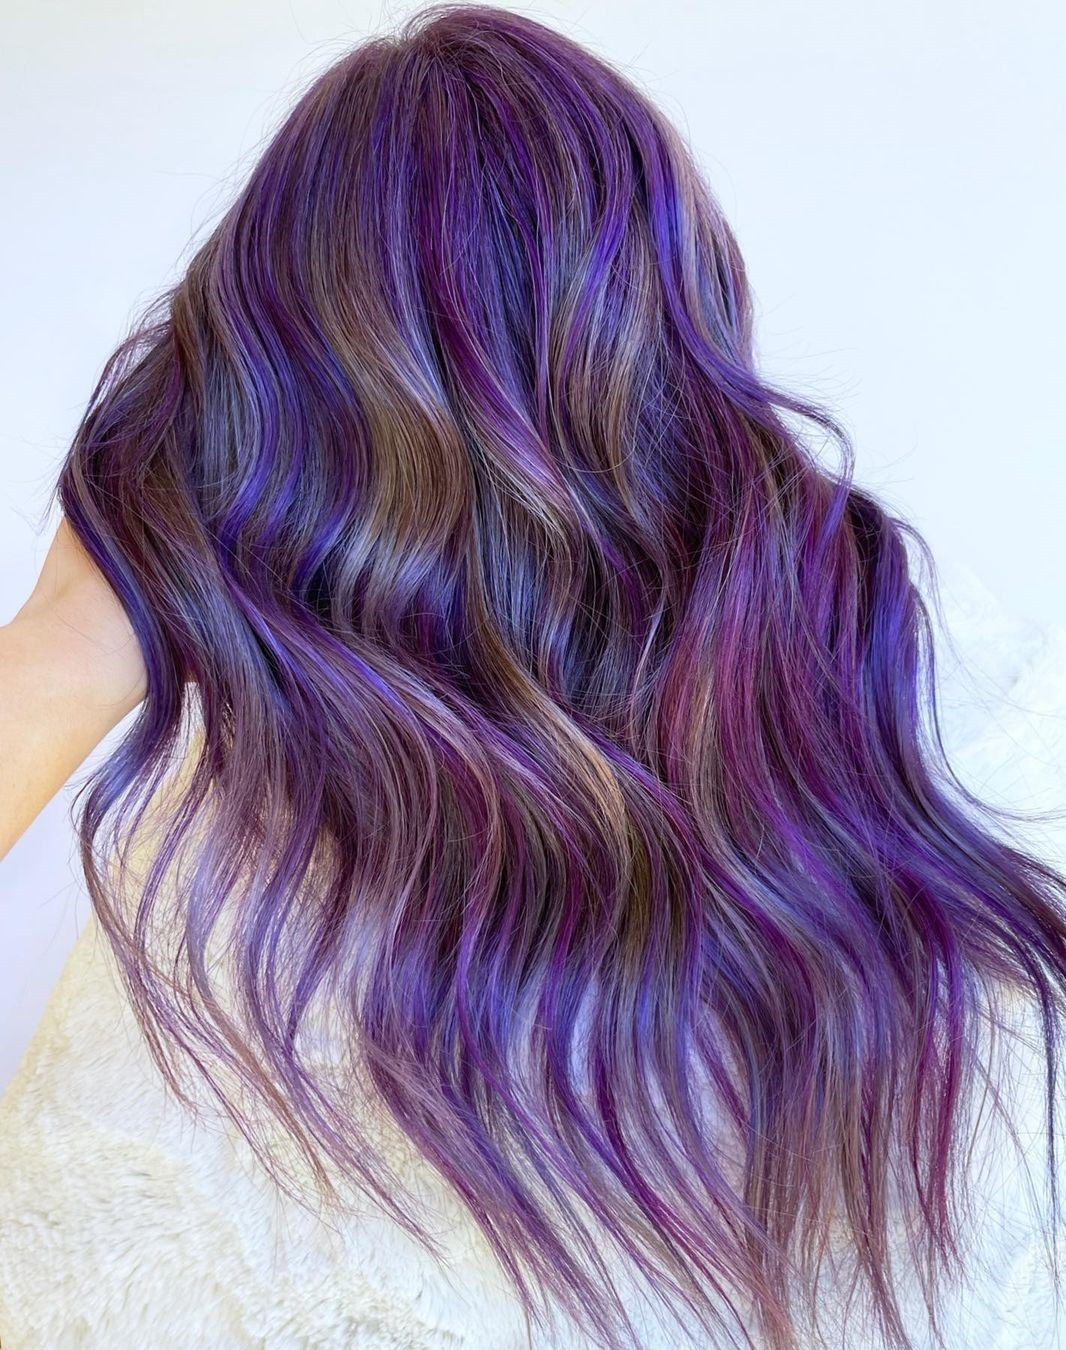 Bronze and Purple Hair Highlights